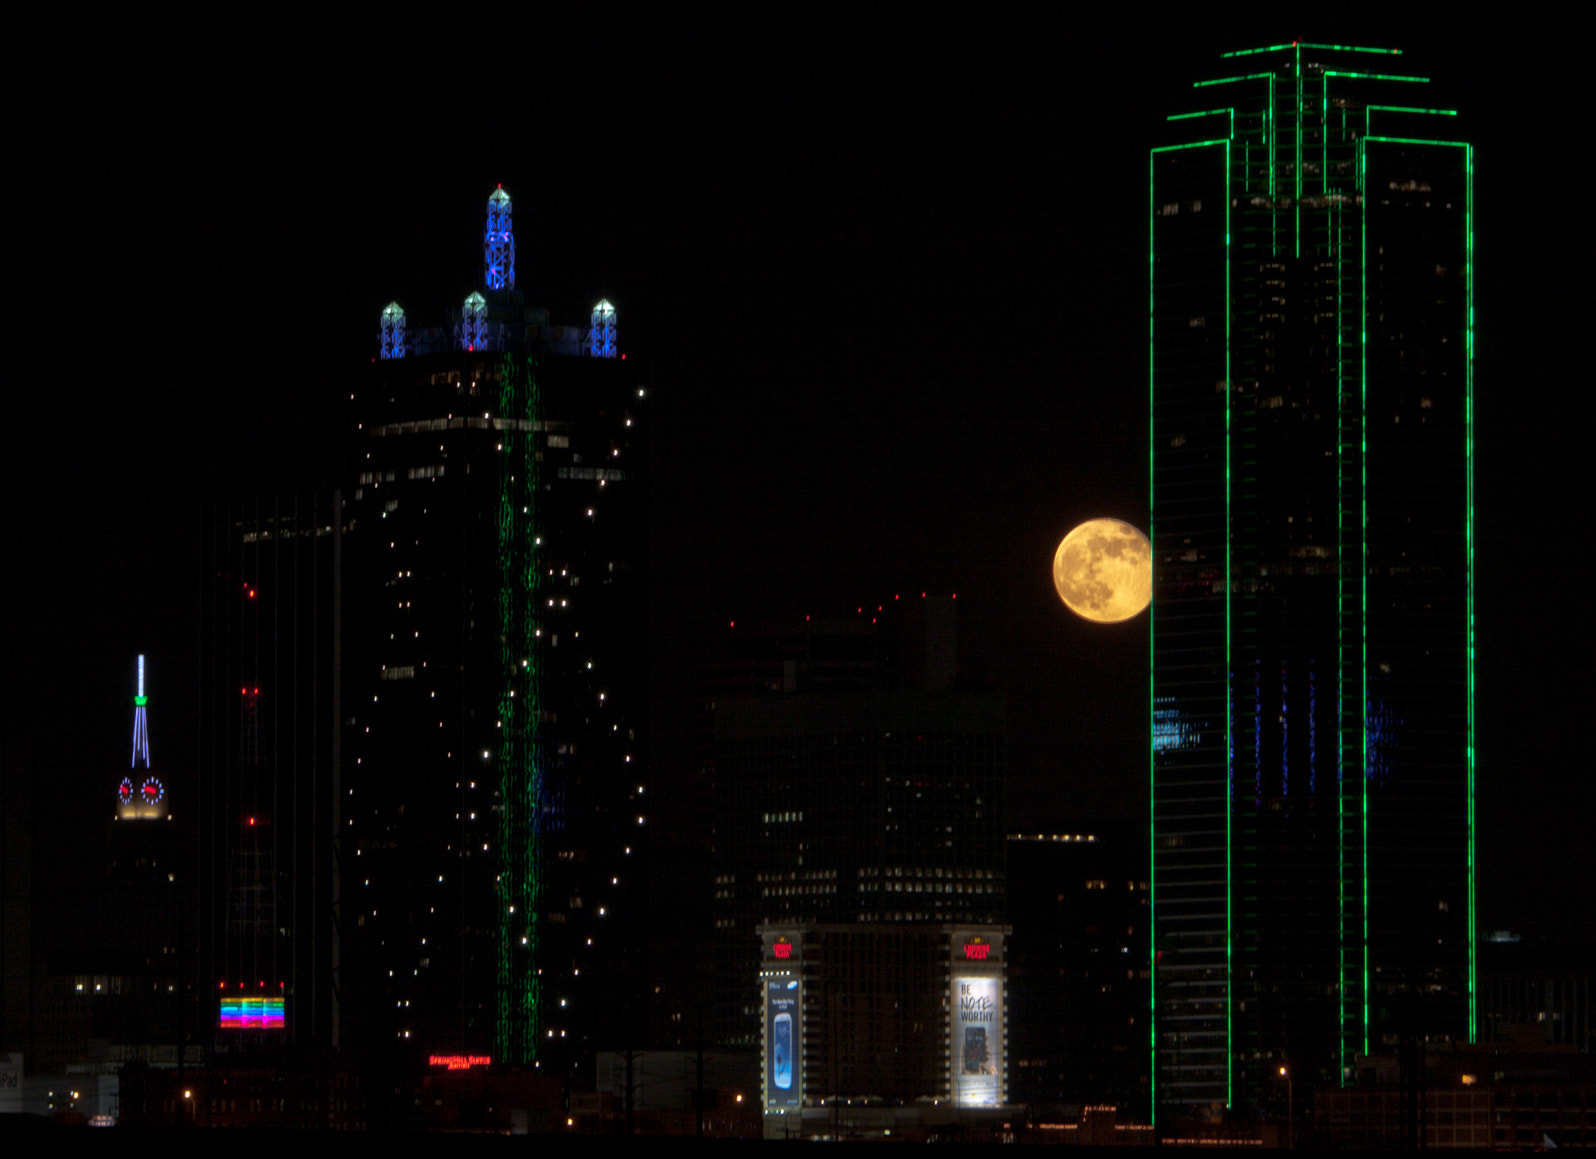 Photograph Moon over Dallas by Alexandre Guapyassu on 500px